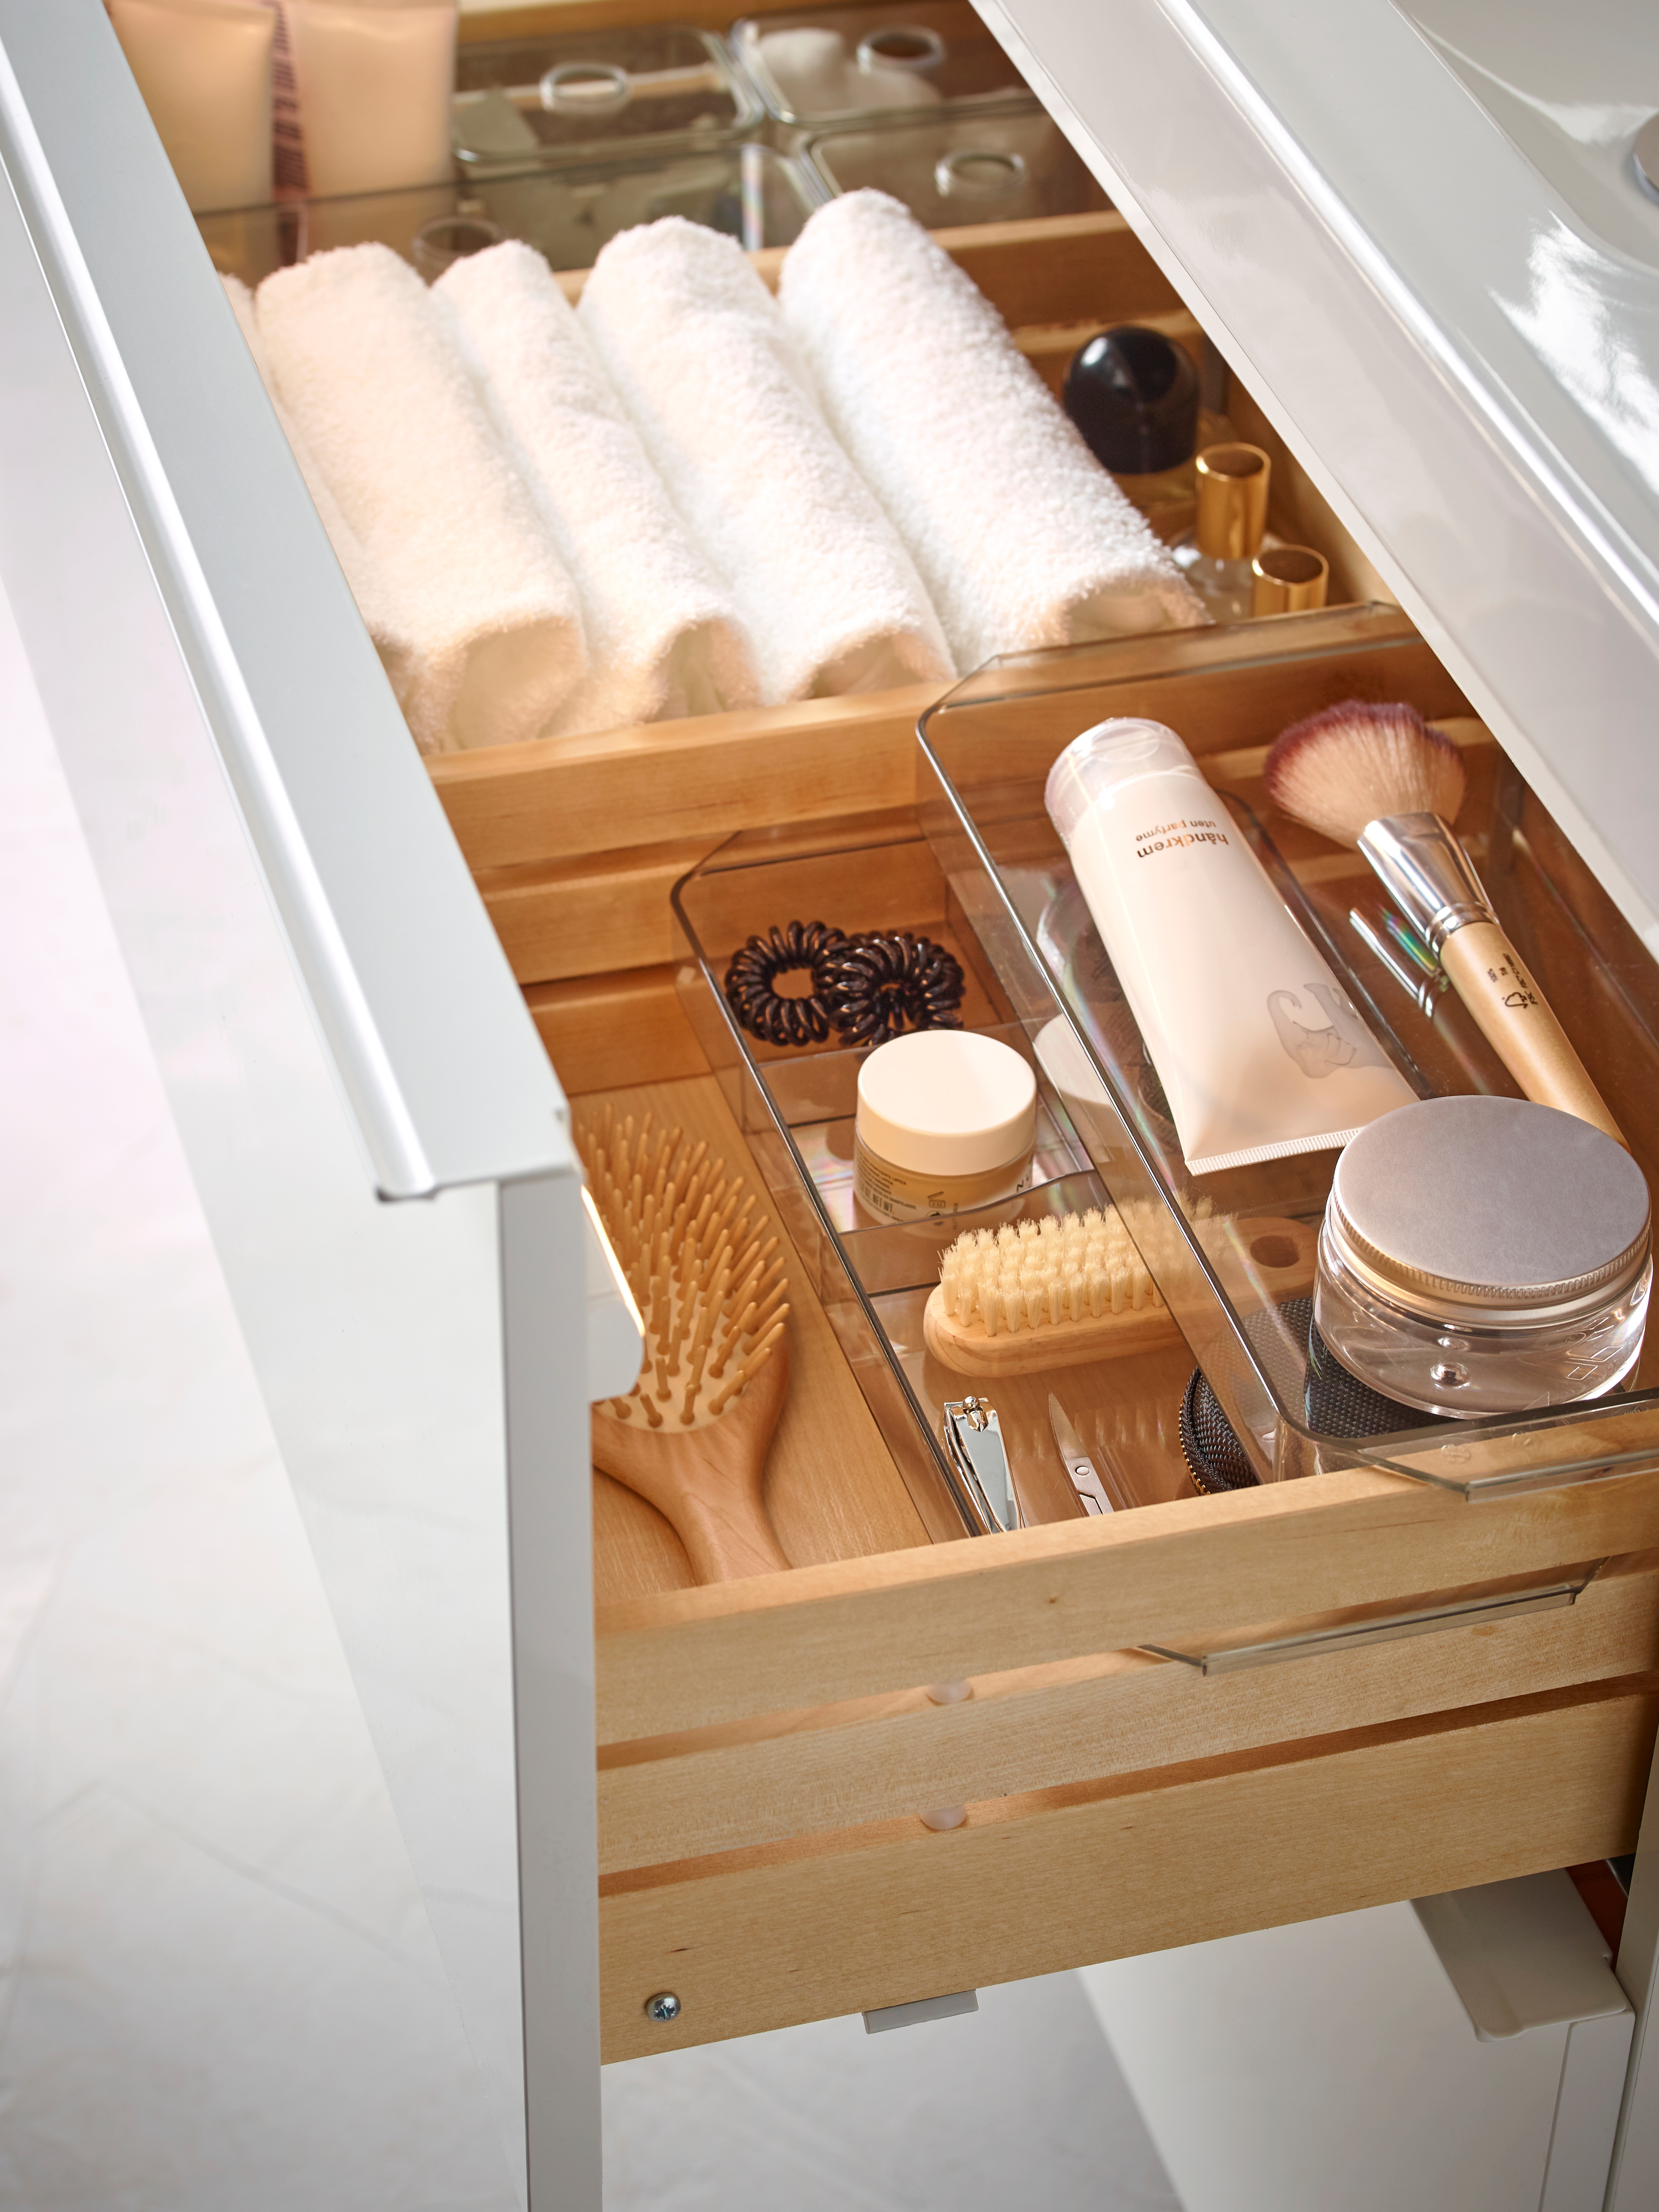 Open drawer with VÅGSJÖN bath towels, two GODMORGON storage units stacked on one another, and makeup tools and cosmetics.